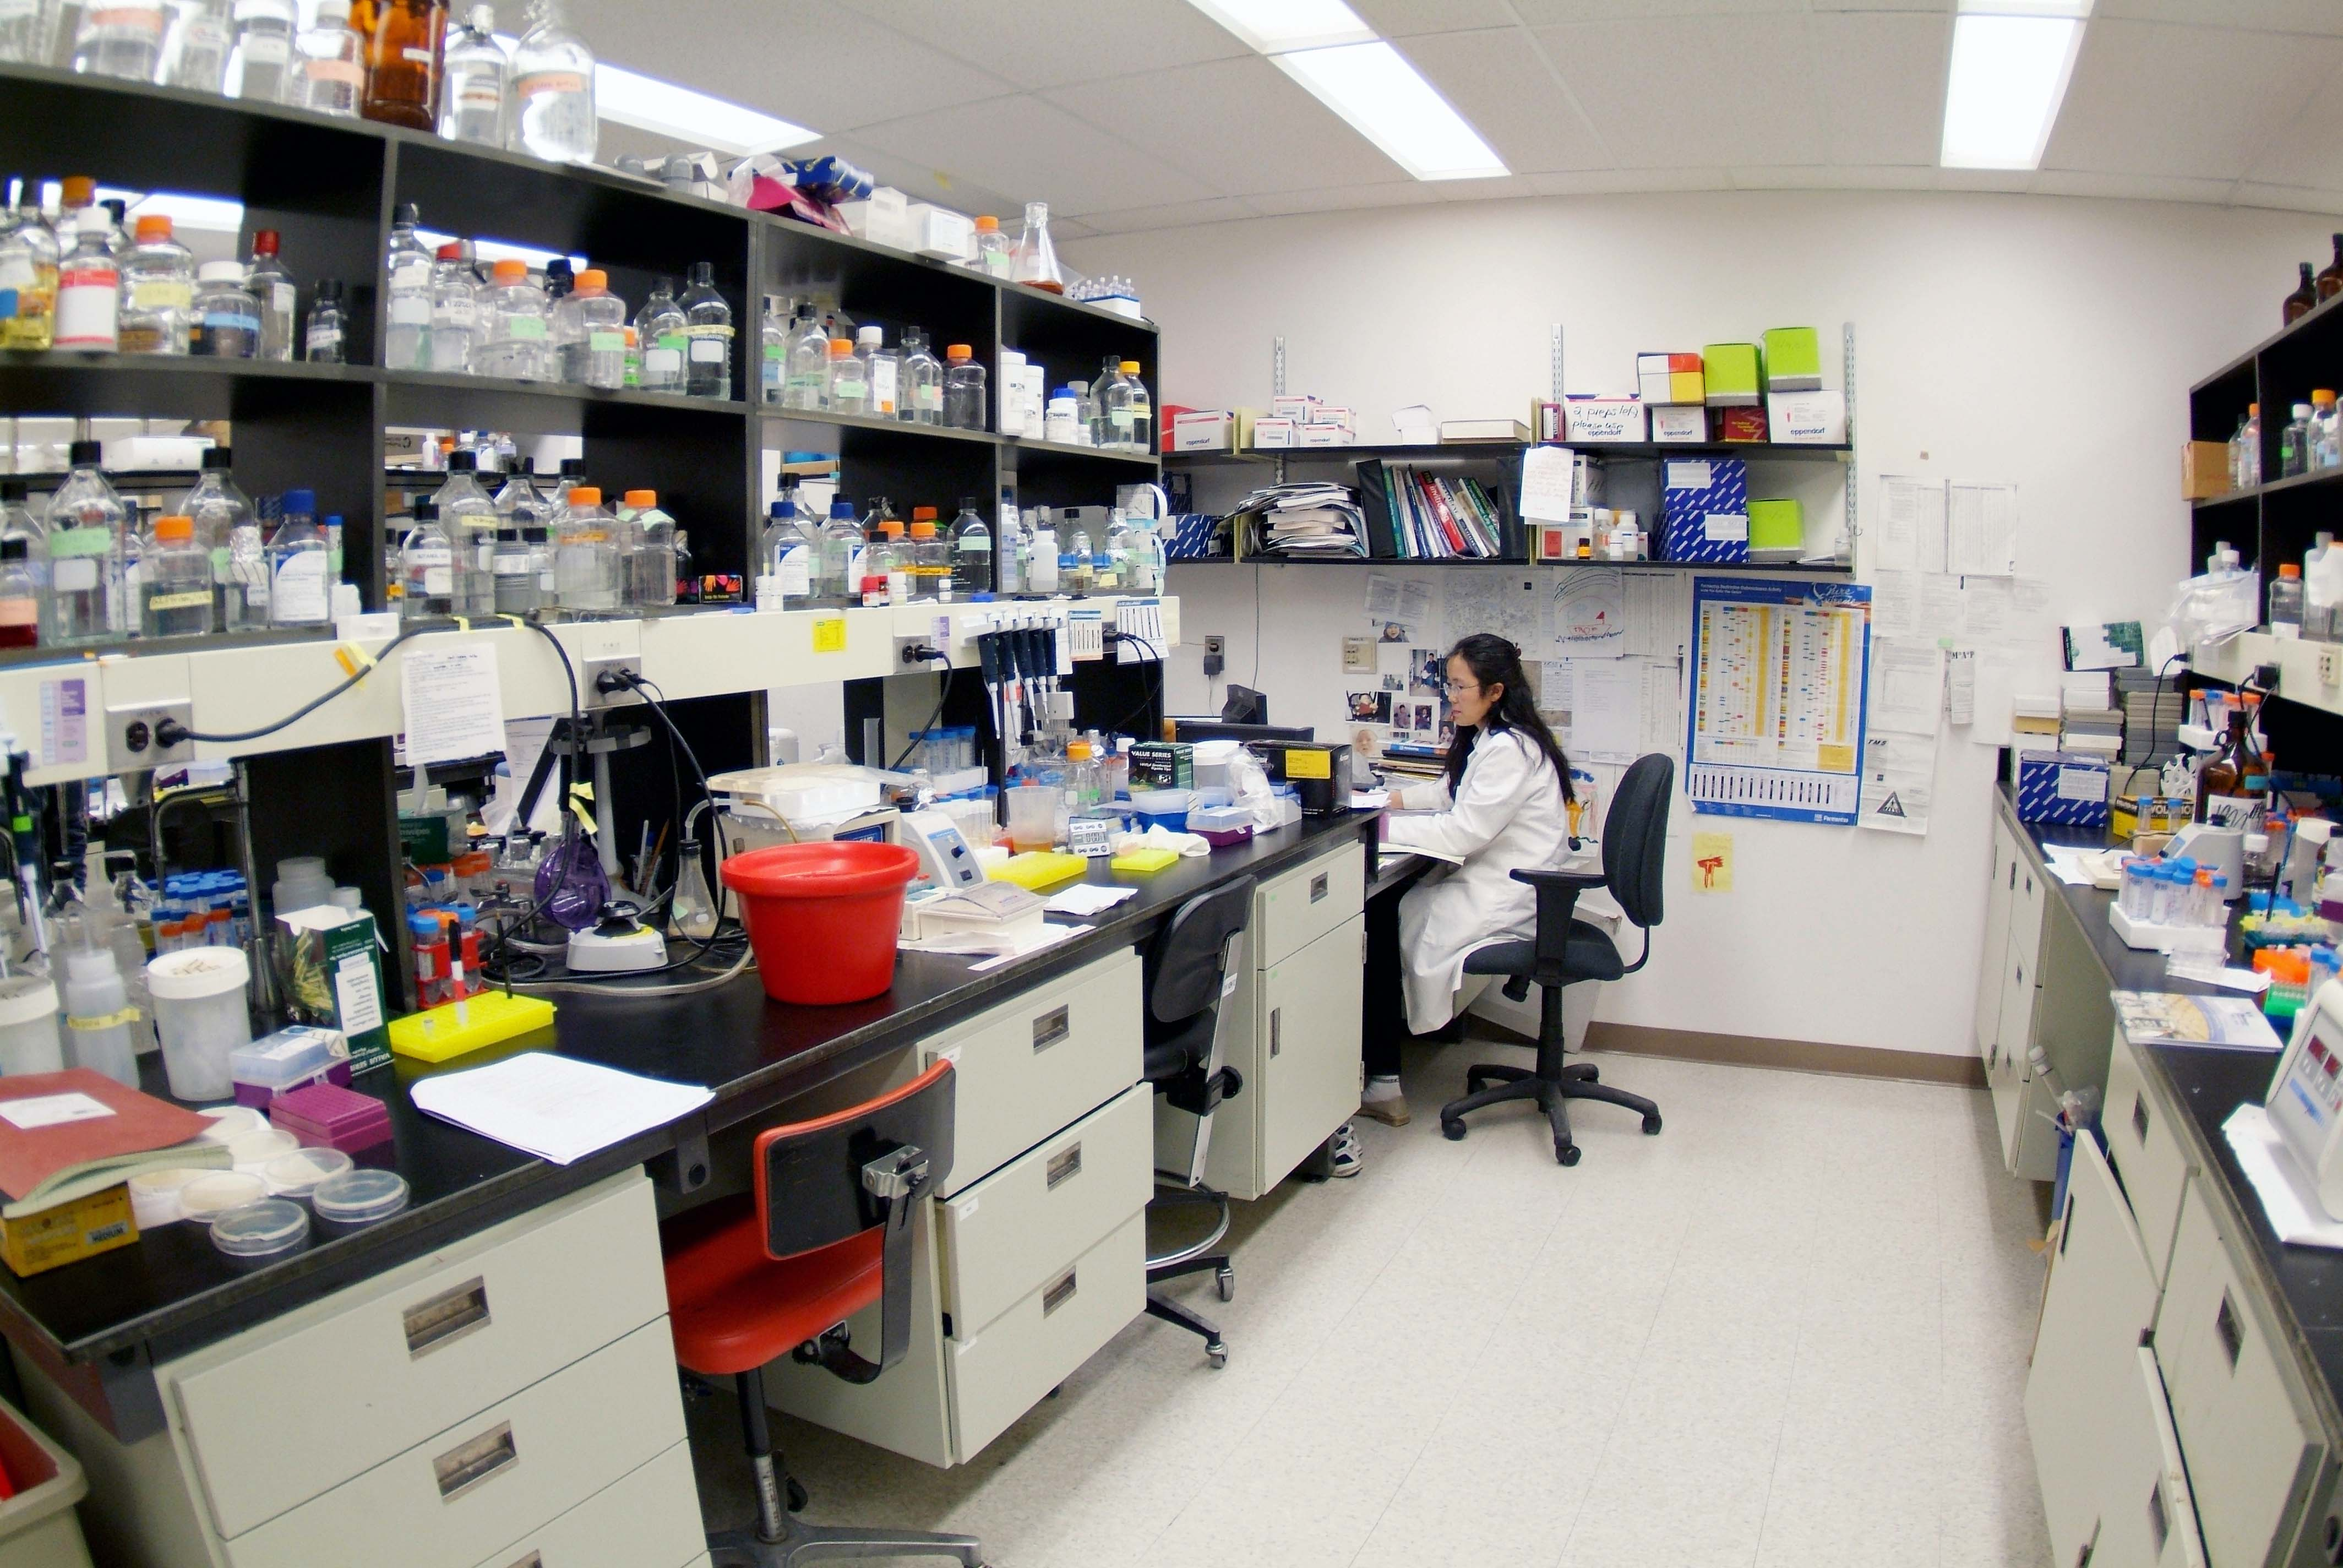 https://www.vet.cornell.edu/sites/default/files/CVM_VTBMS_BioSciences-lab_VRT_150_27370.jpg